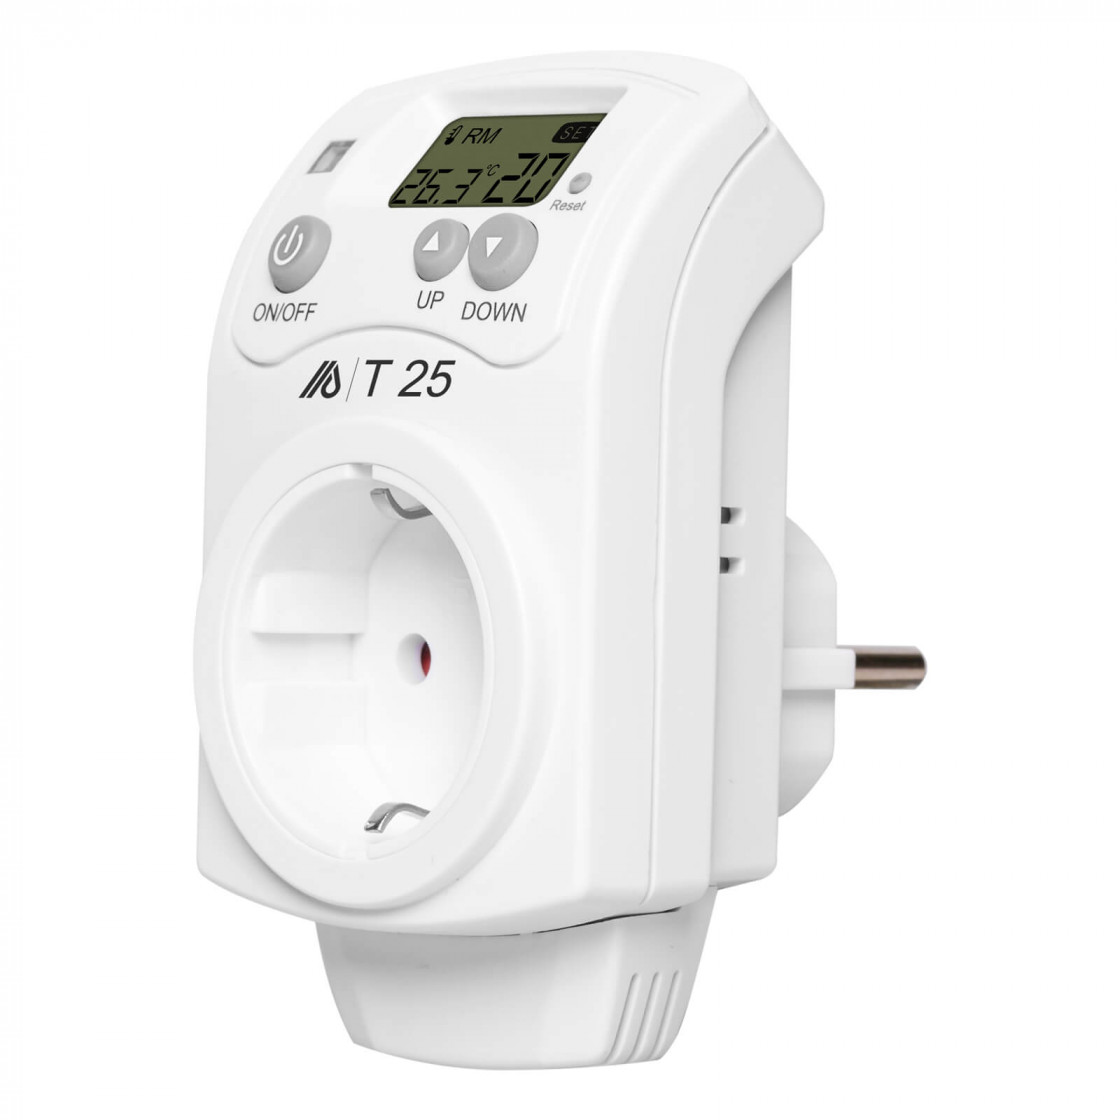 ALLEGRA Steckdosenthermostat T25